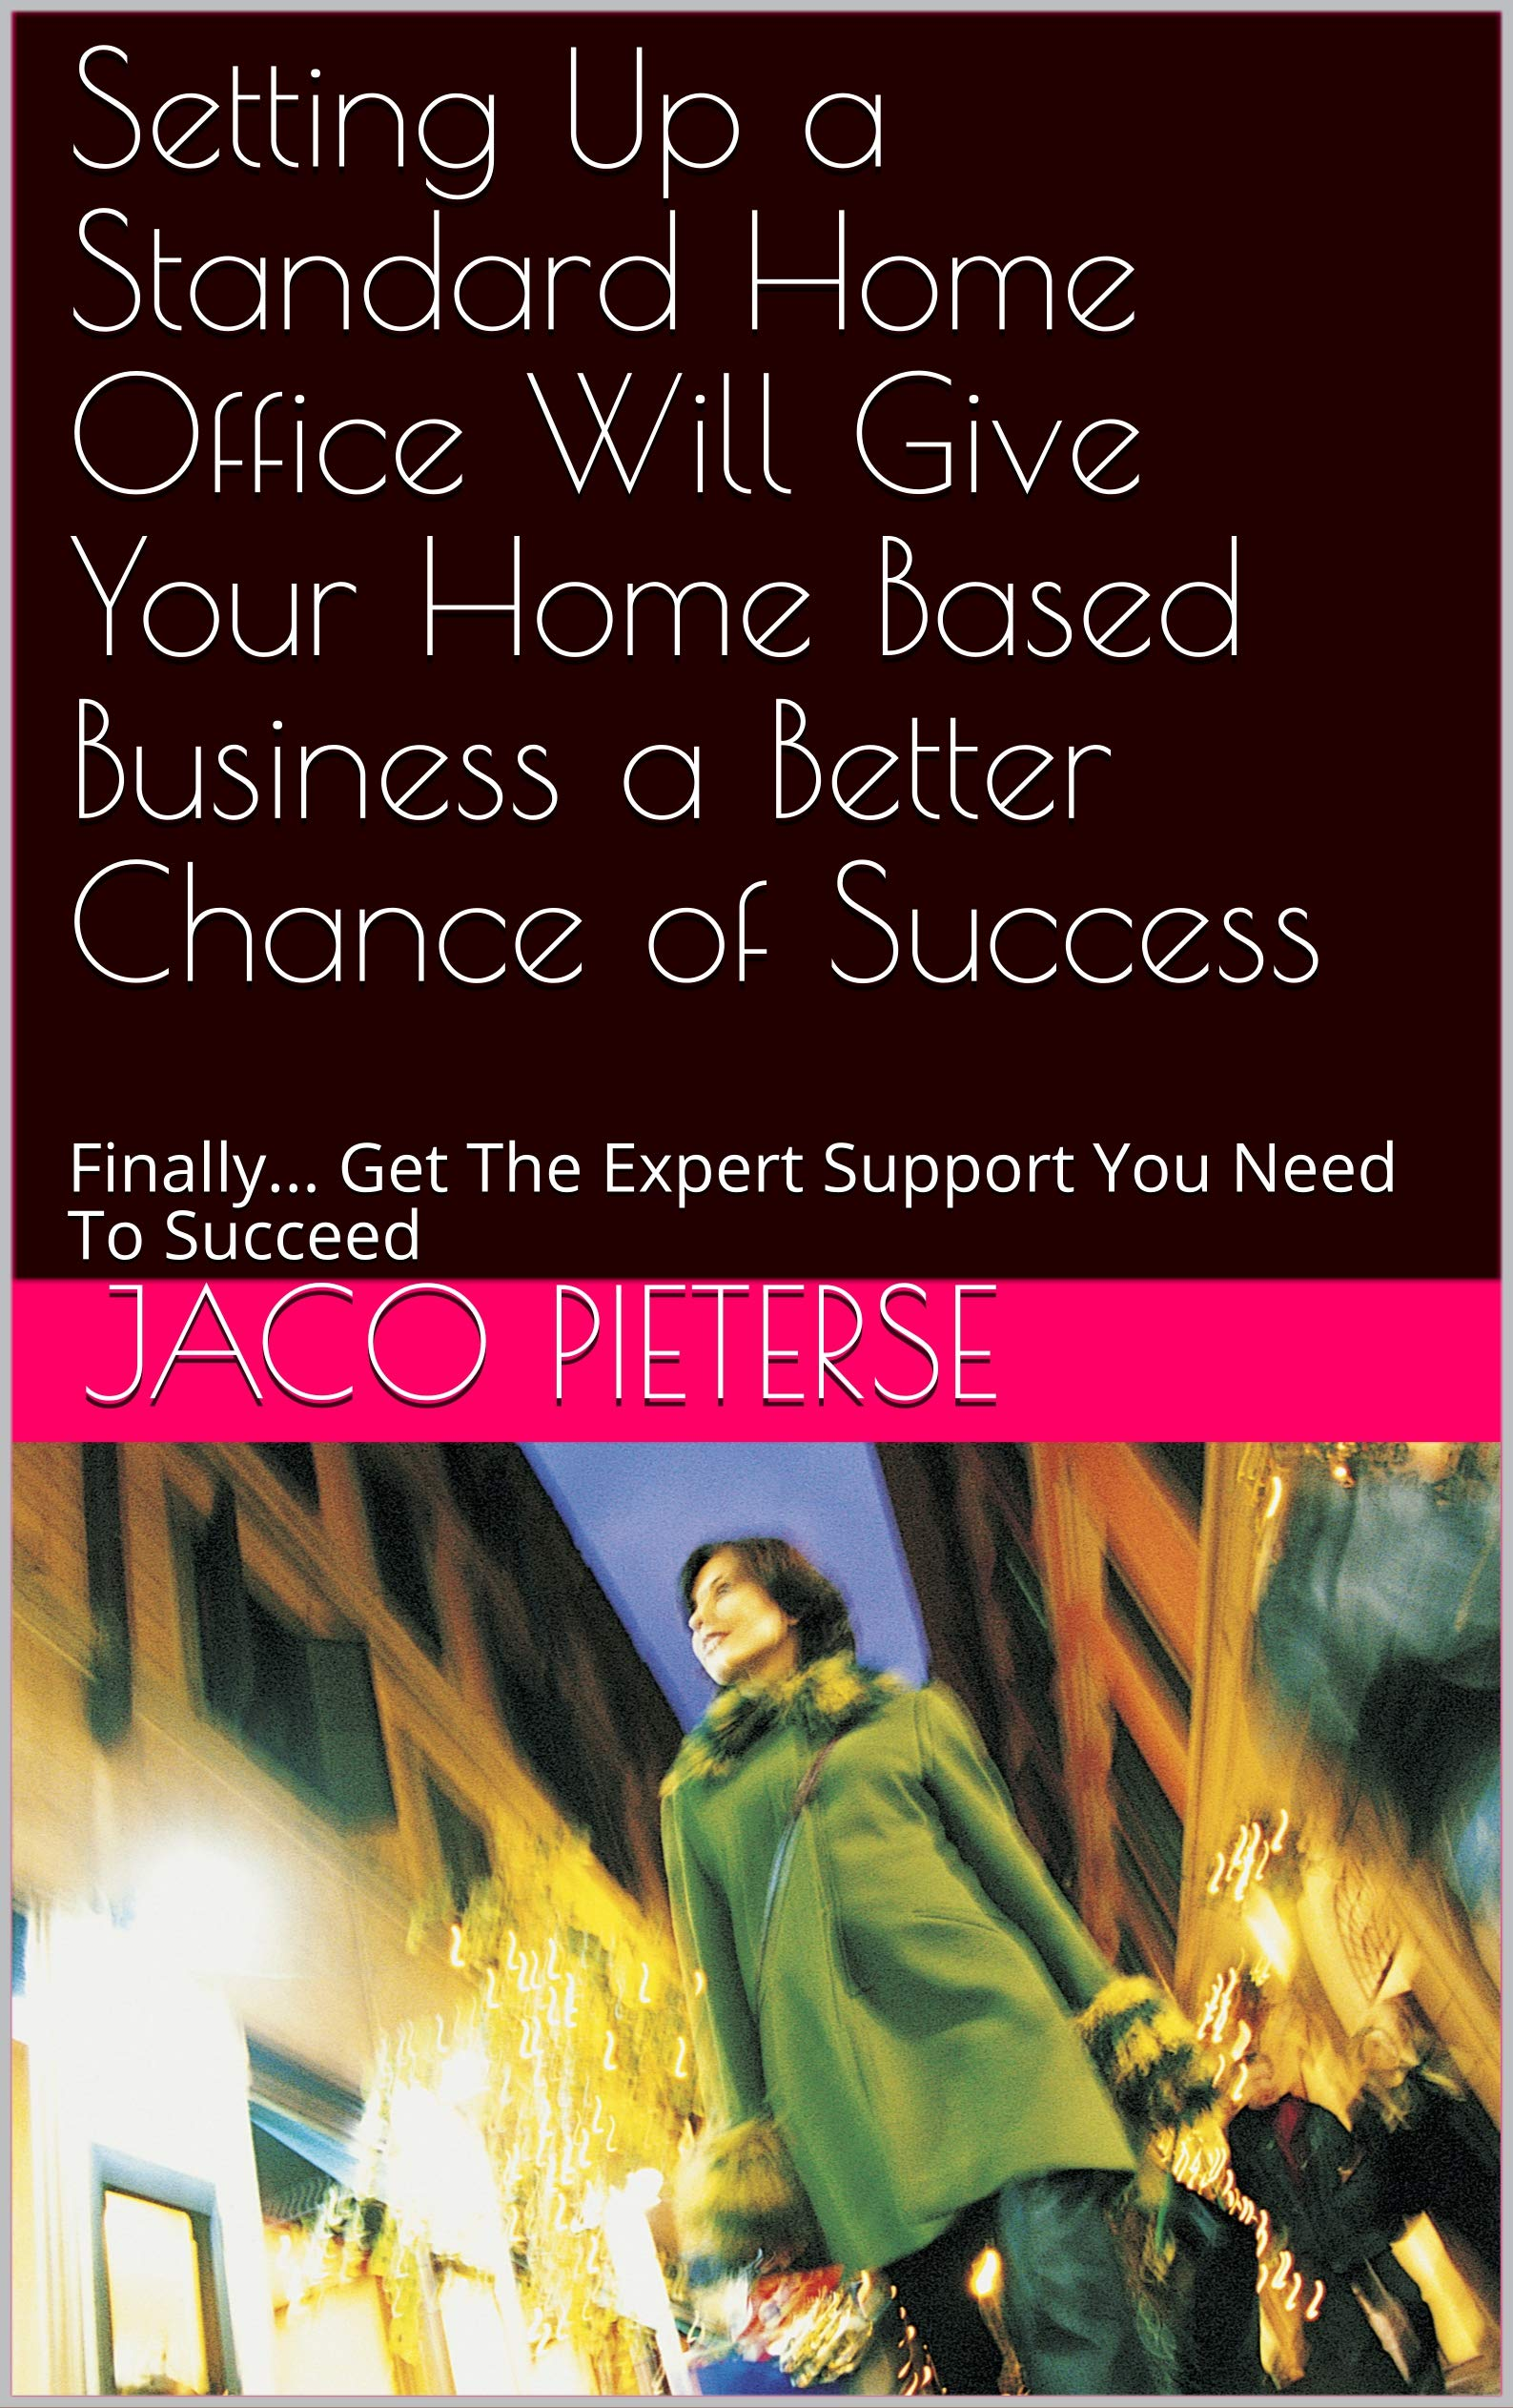 Setting Up a Standard Home Office Will Give Your Home Based Business a Better Chance of Success: Finally... Get The Expert Support You Need To Succeed